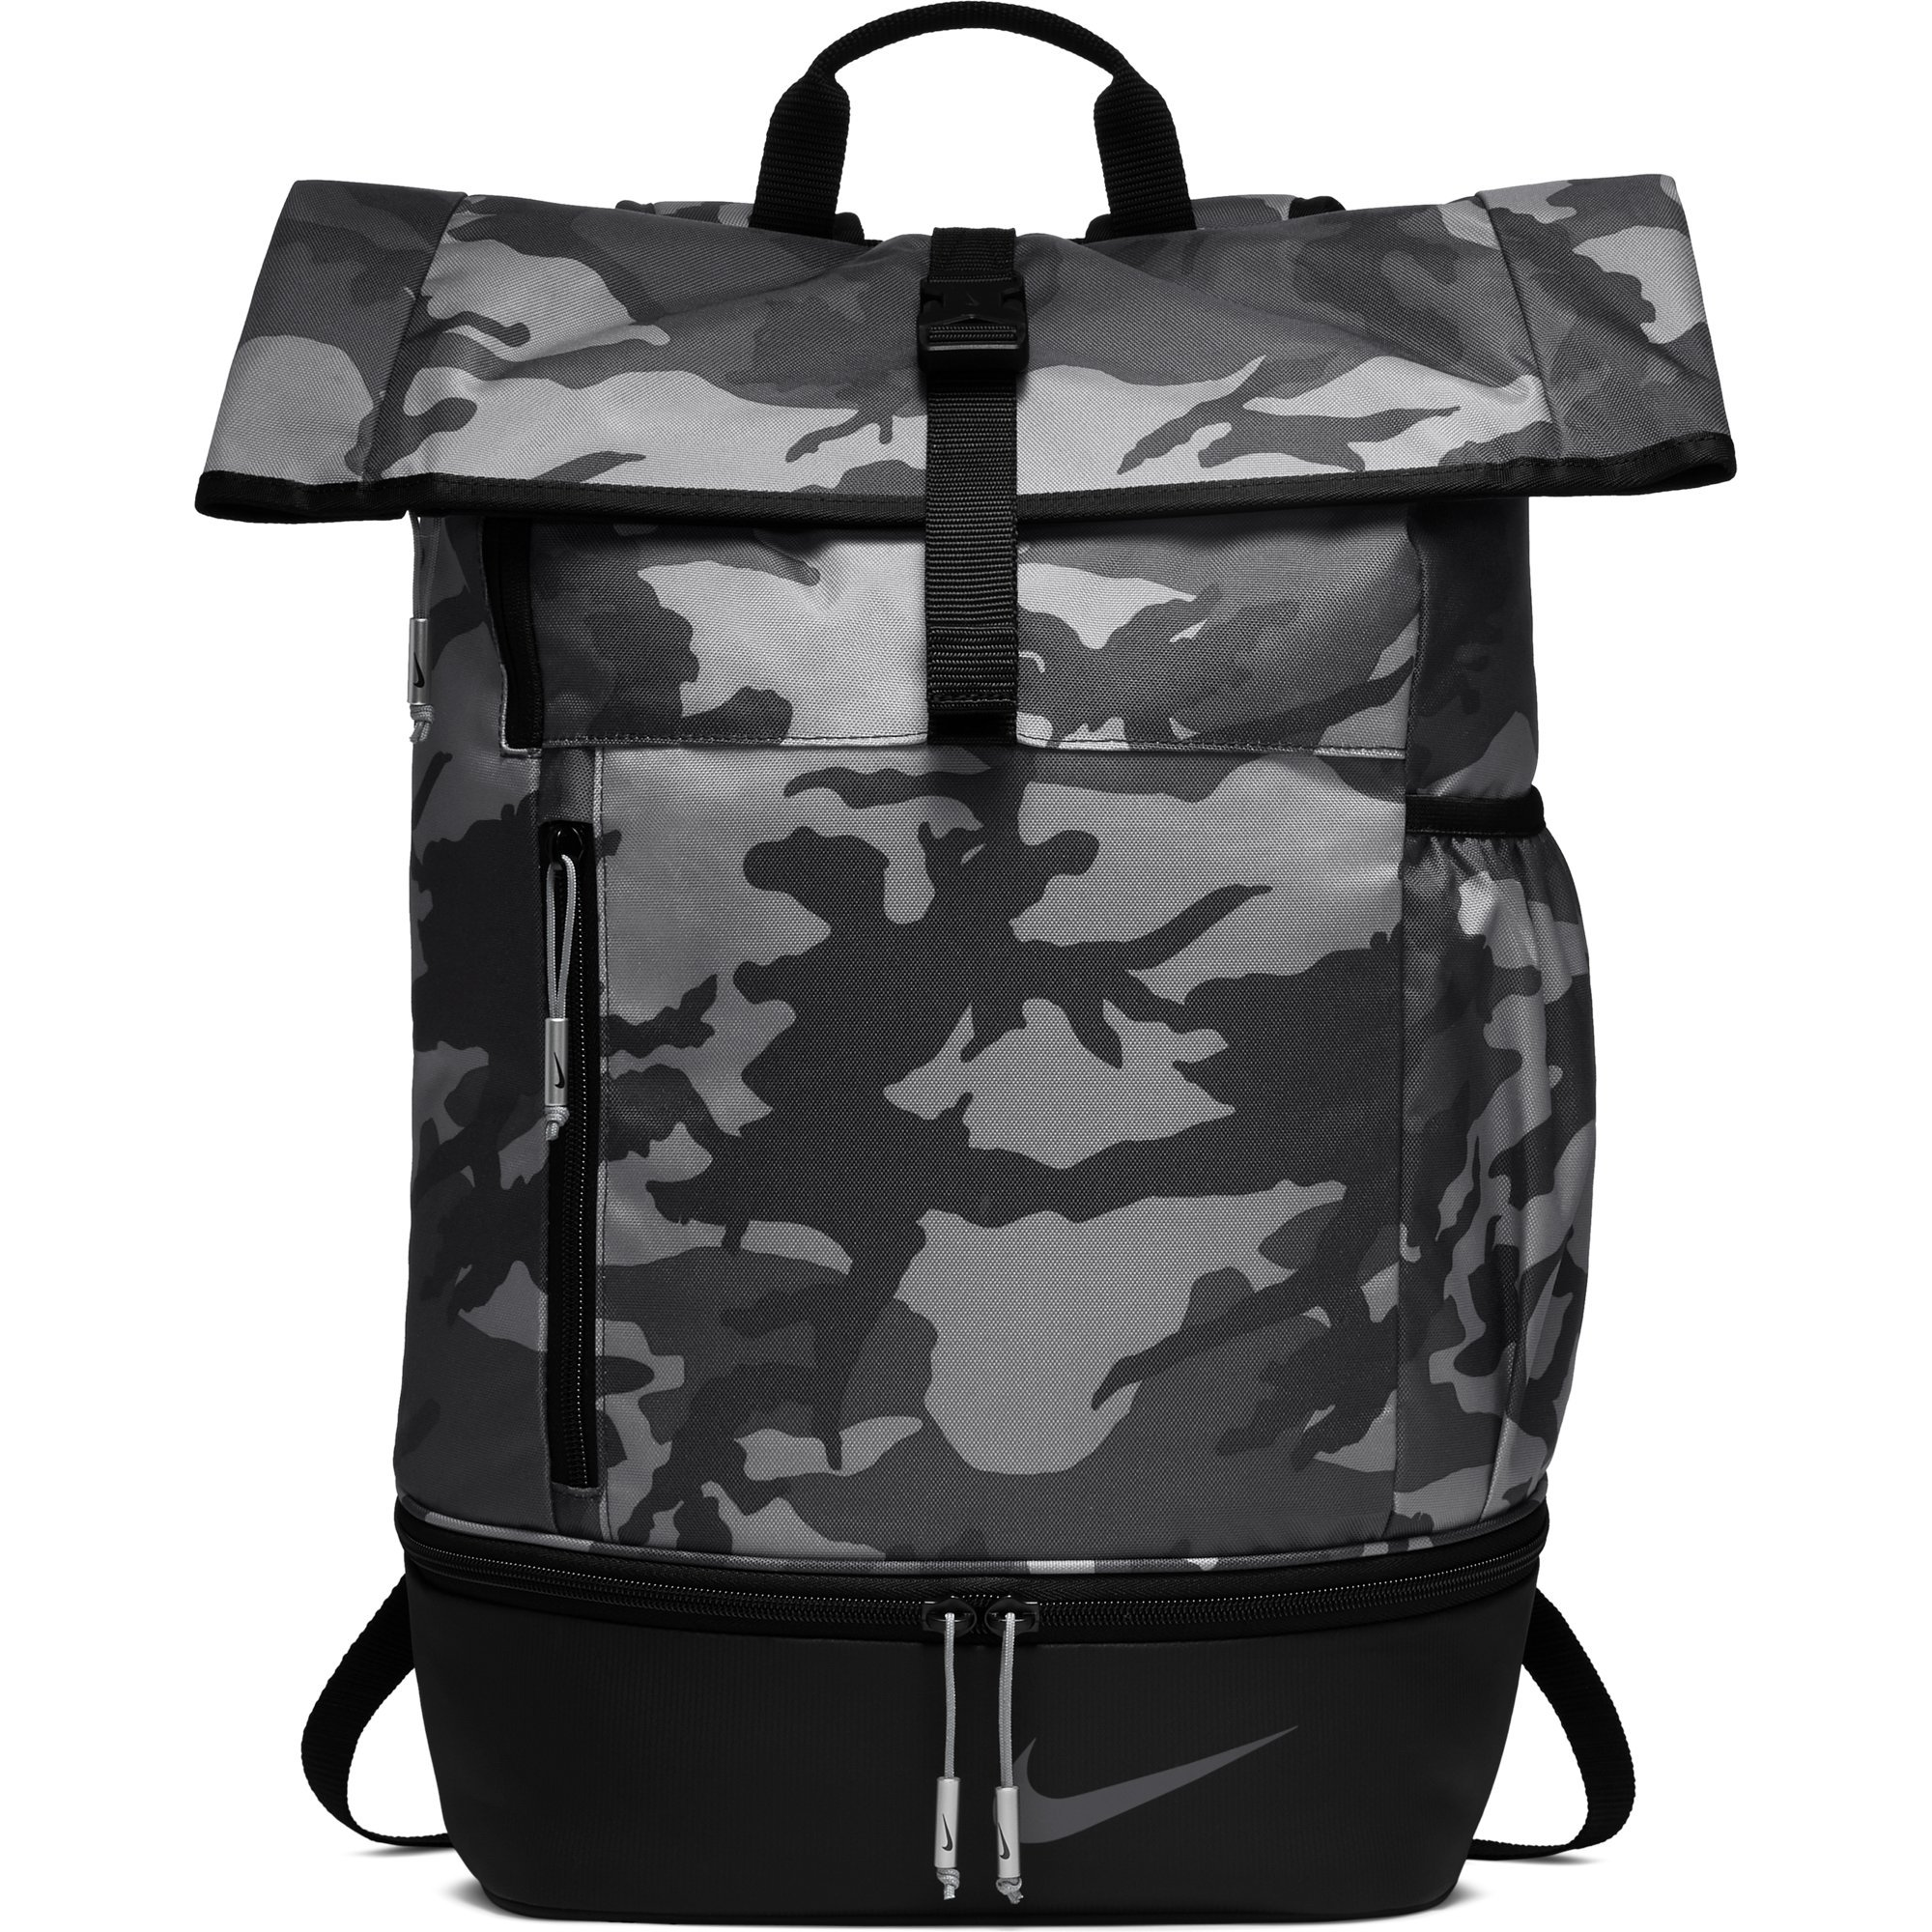 NIKE Sport All Over Print Golf Backpack, Anthracite/Black/Anthracite by Nike